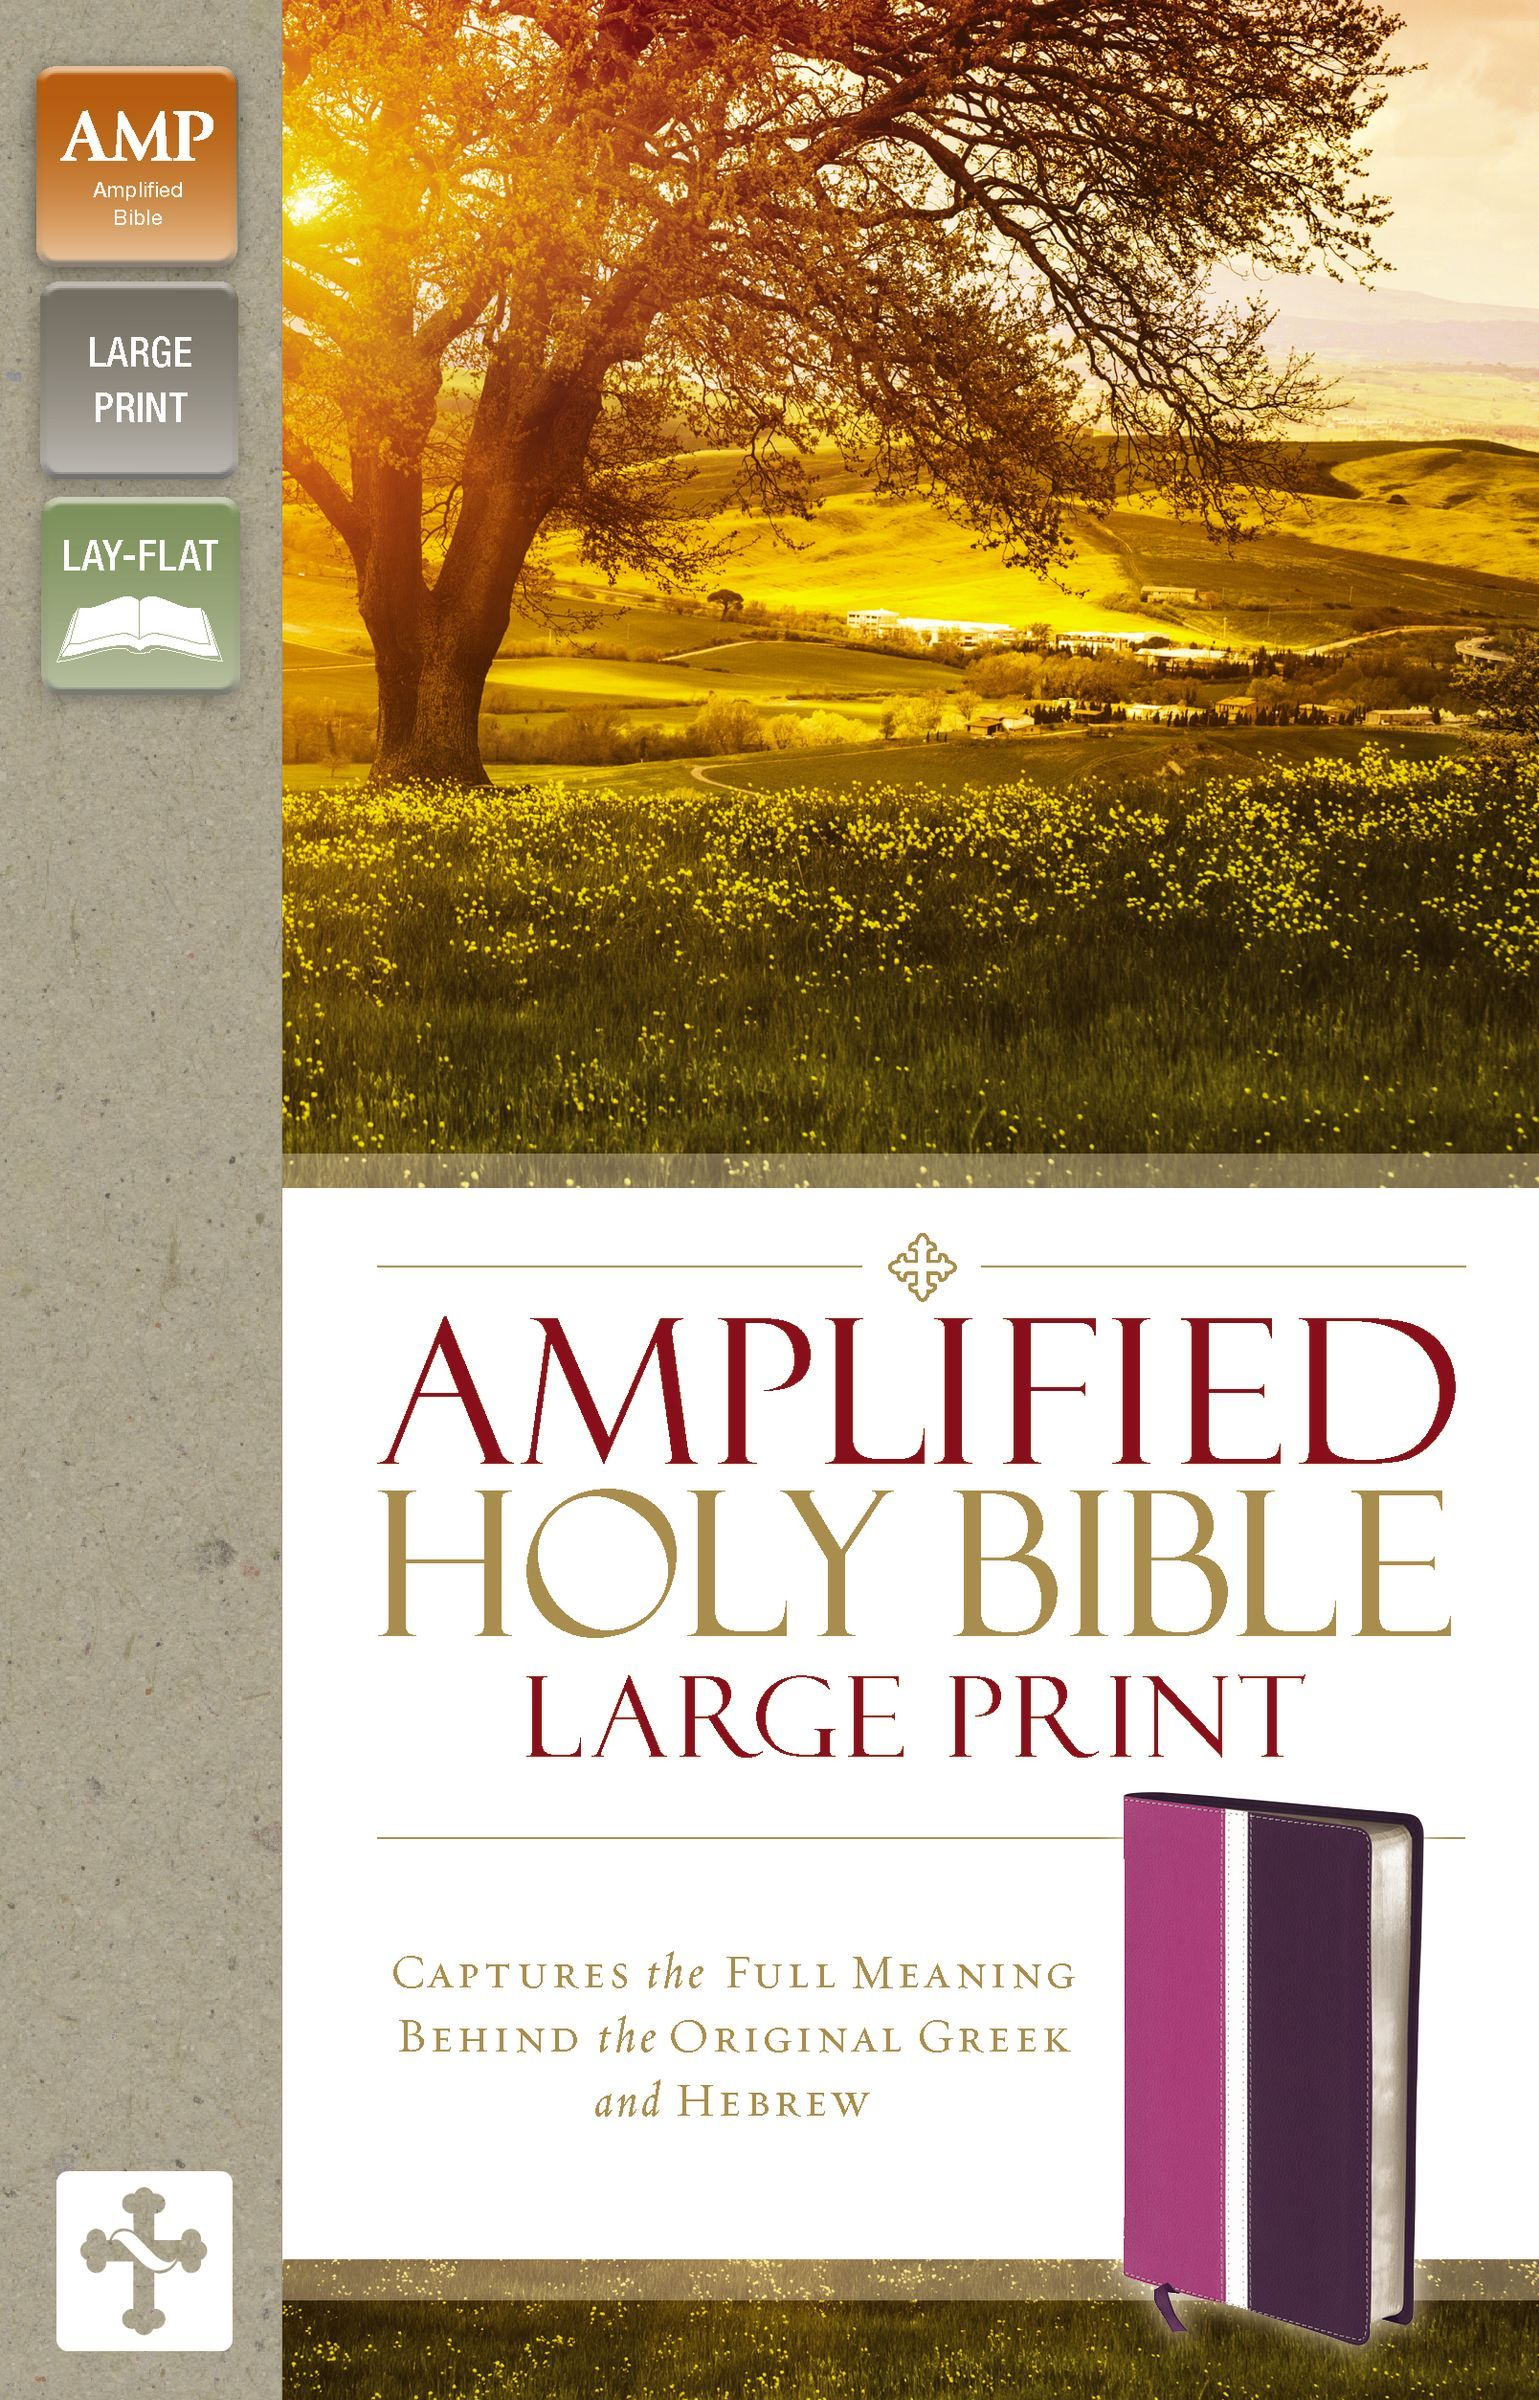 Amplified Holy Bible, Large Print, Leathersoft, Pink/Purple: Captures the Full Meaning Behind the Original Greek and Hebrew